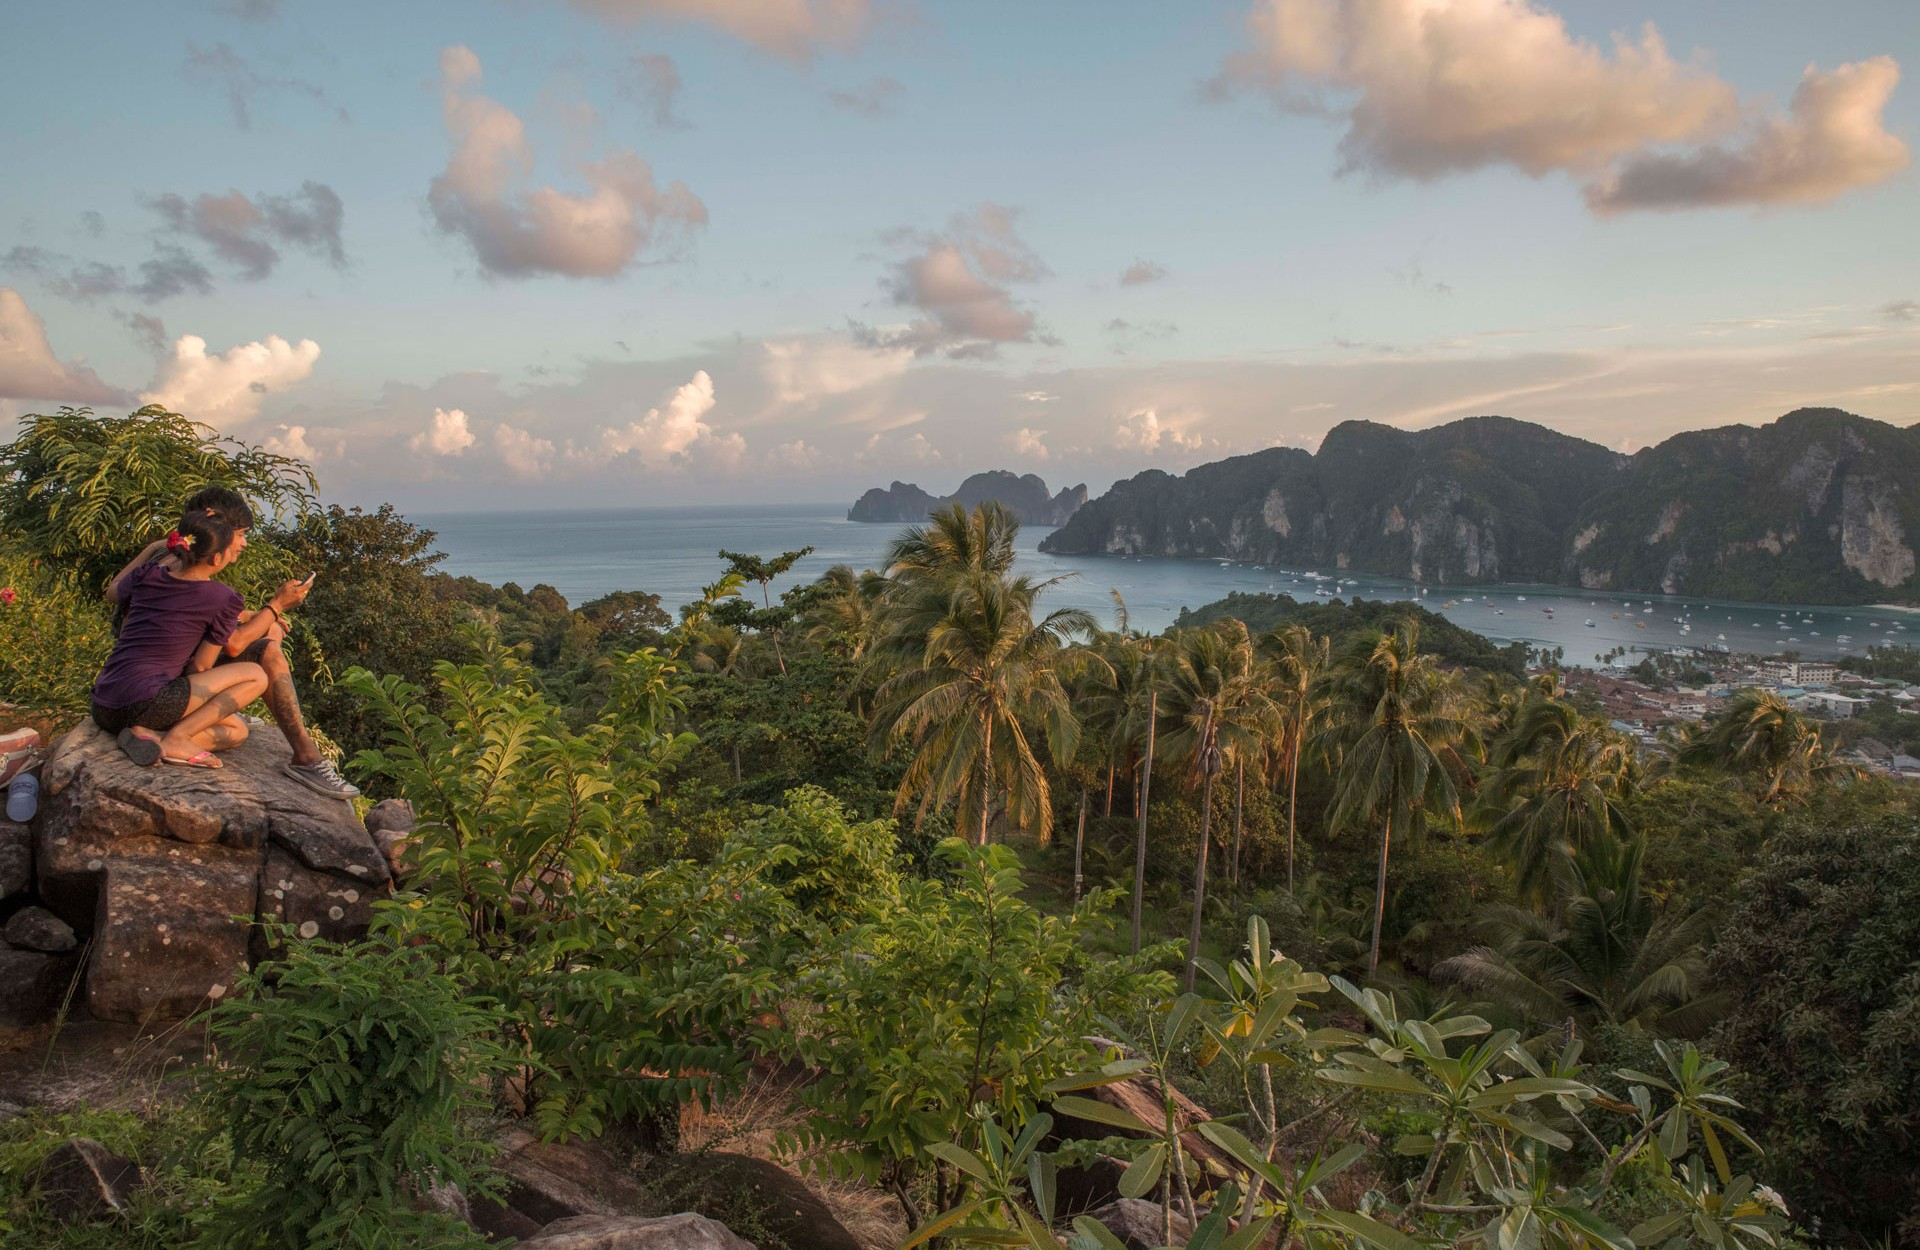 Kho Phi Phi seen from the viewpoint. Photo by Francois